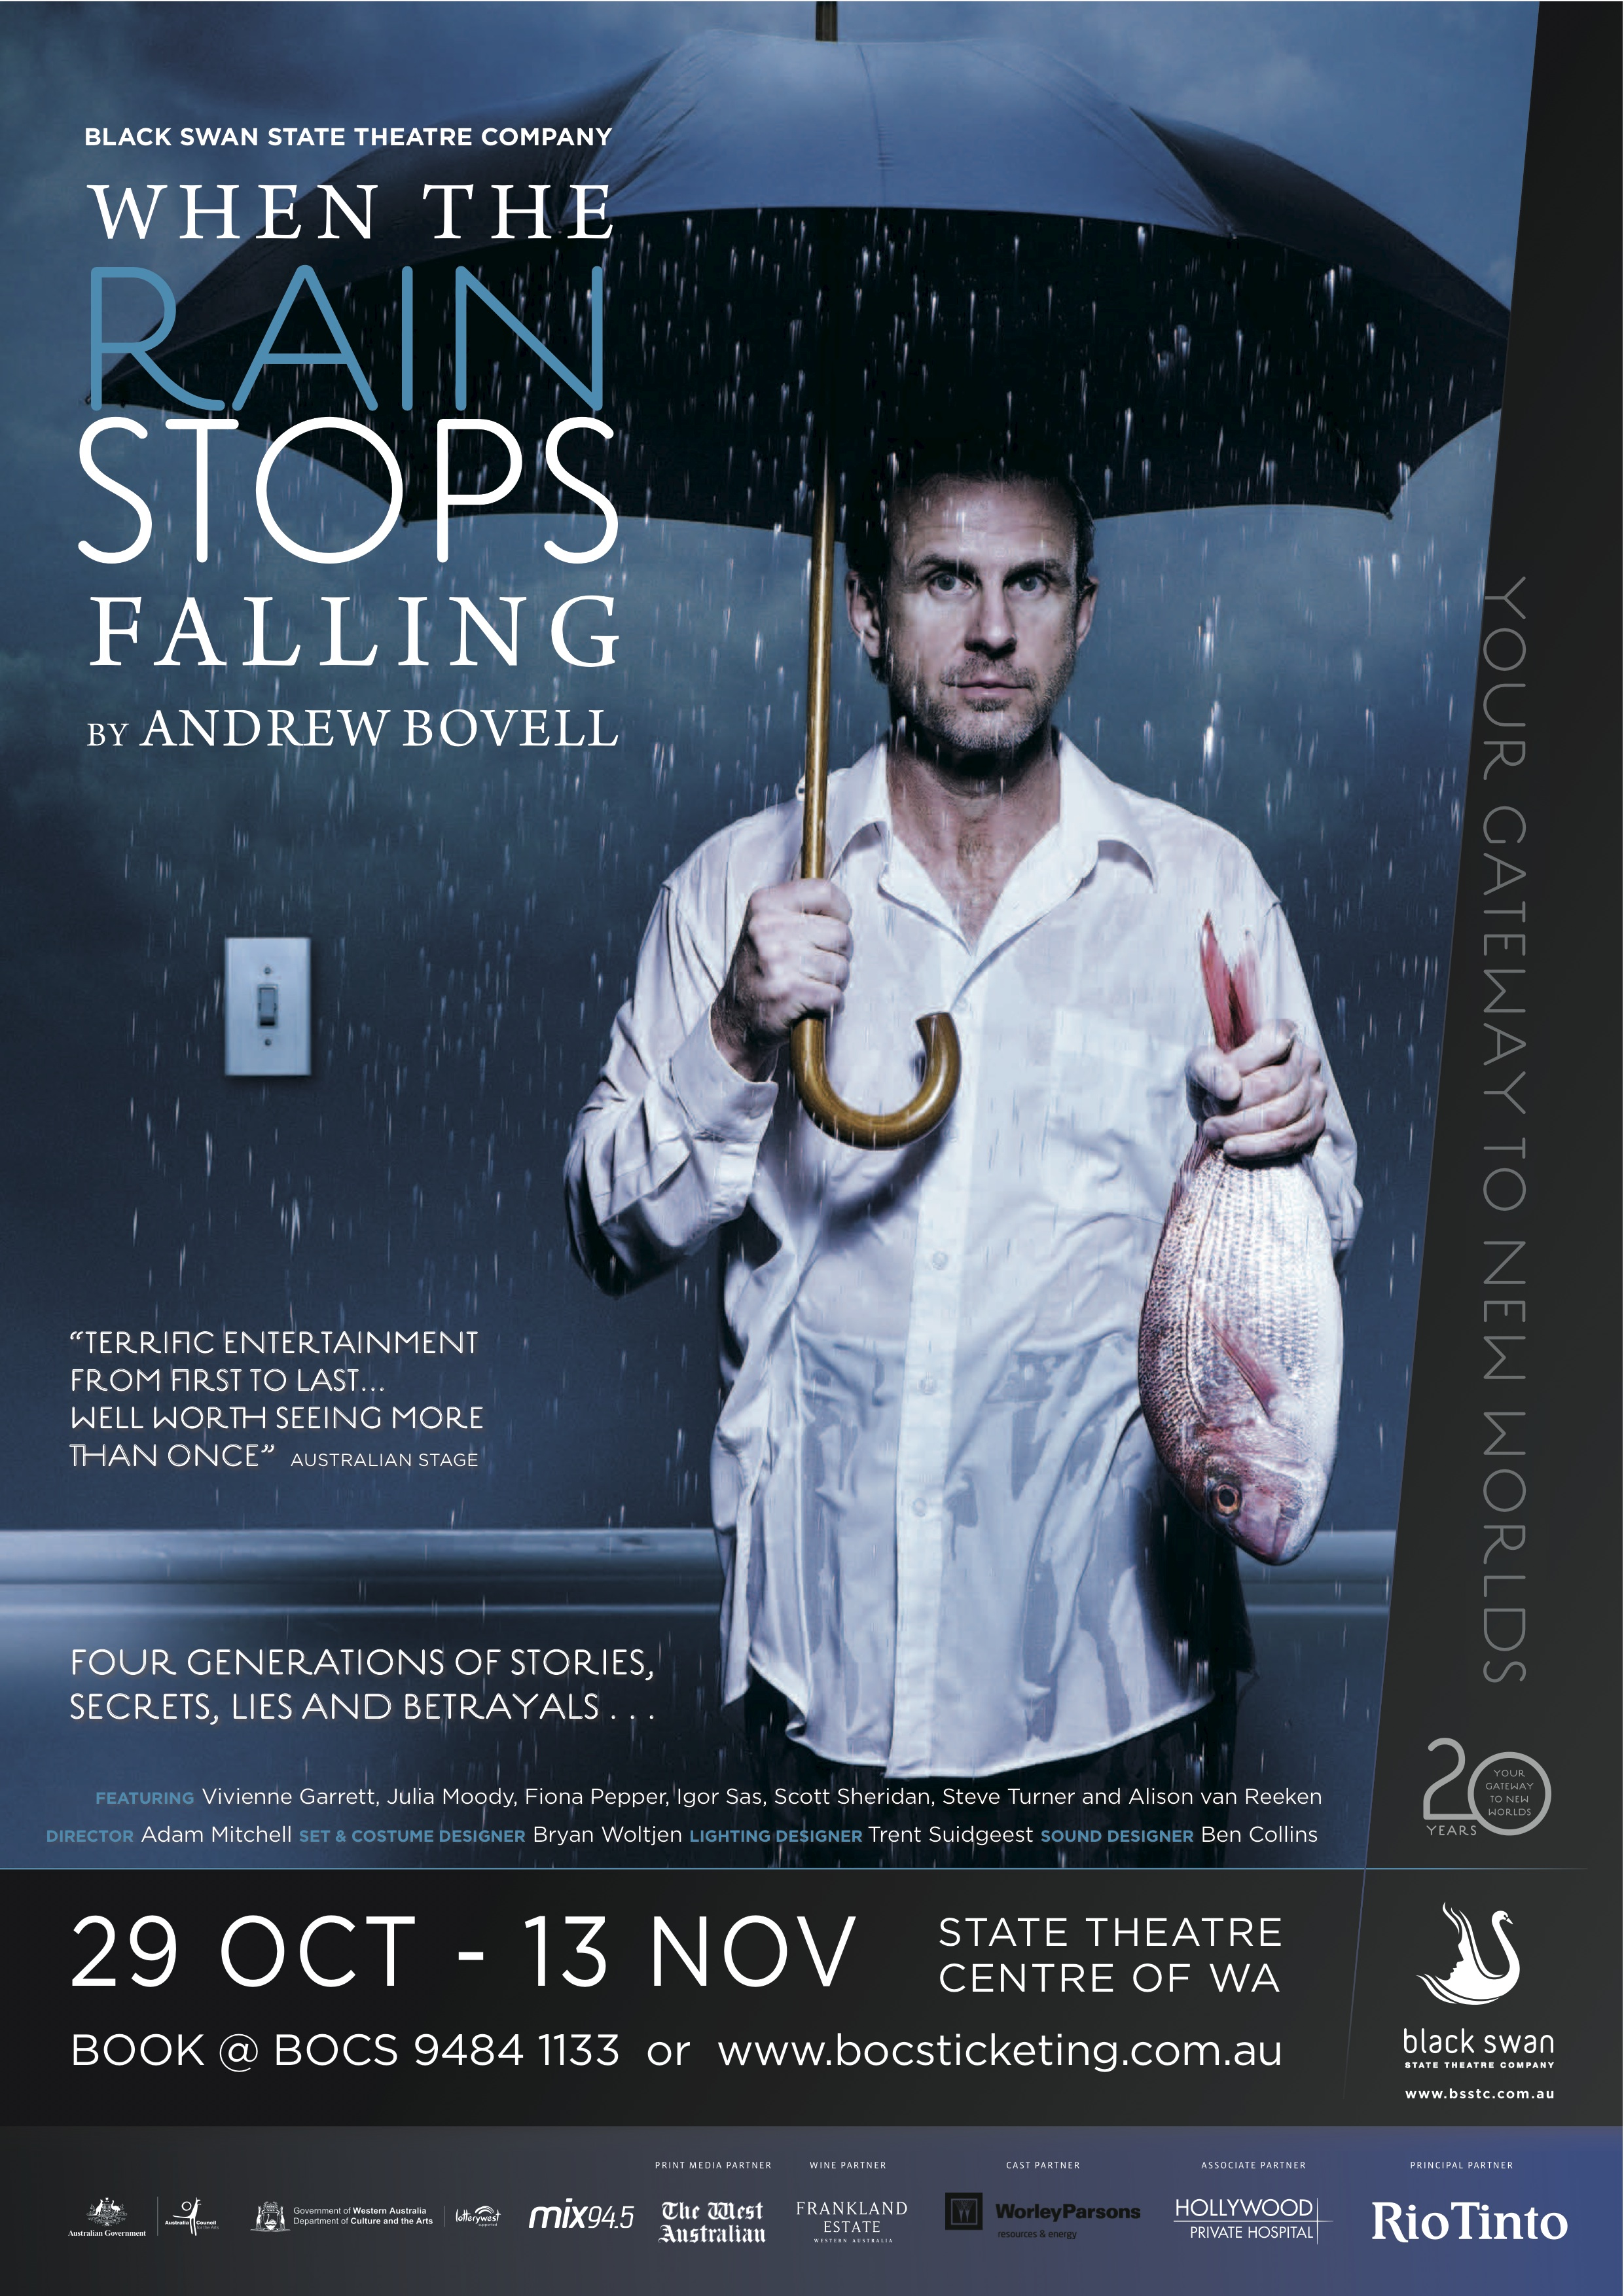 When the Rain Stops falling Poster